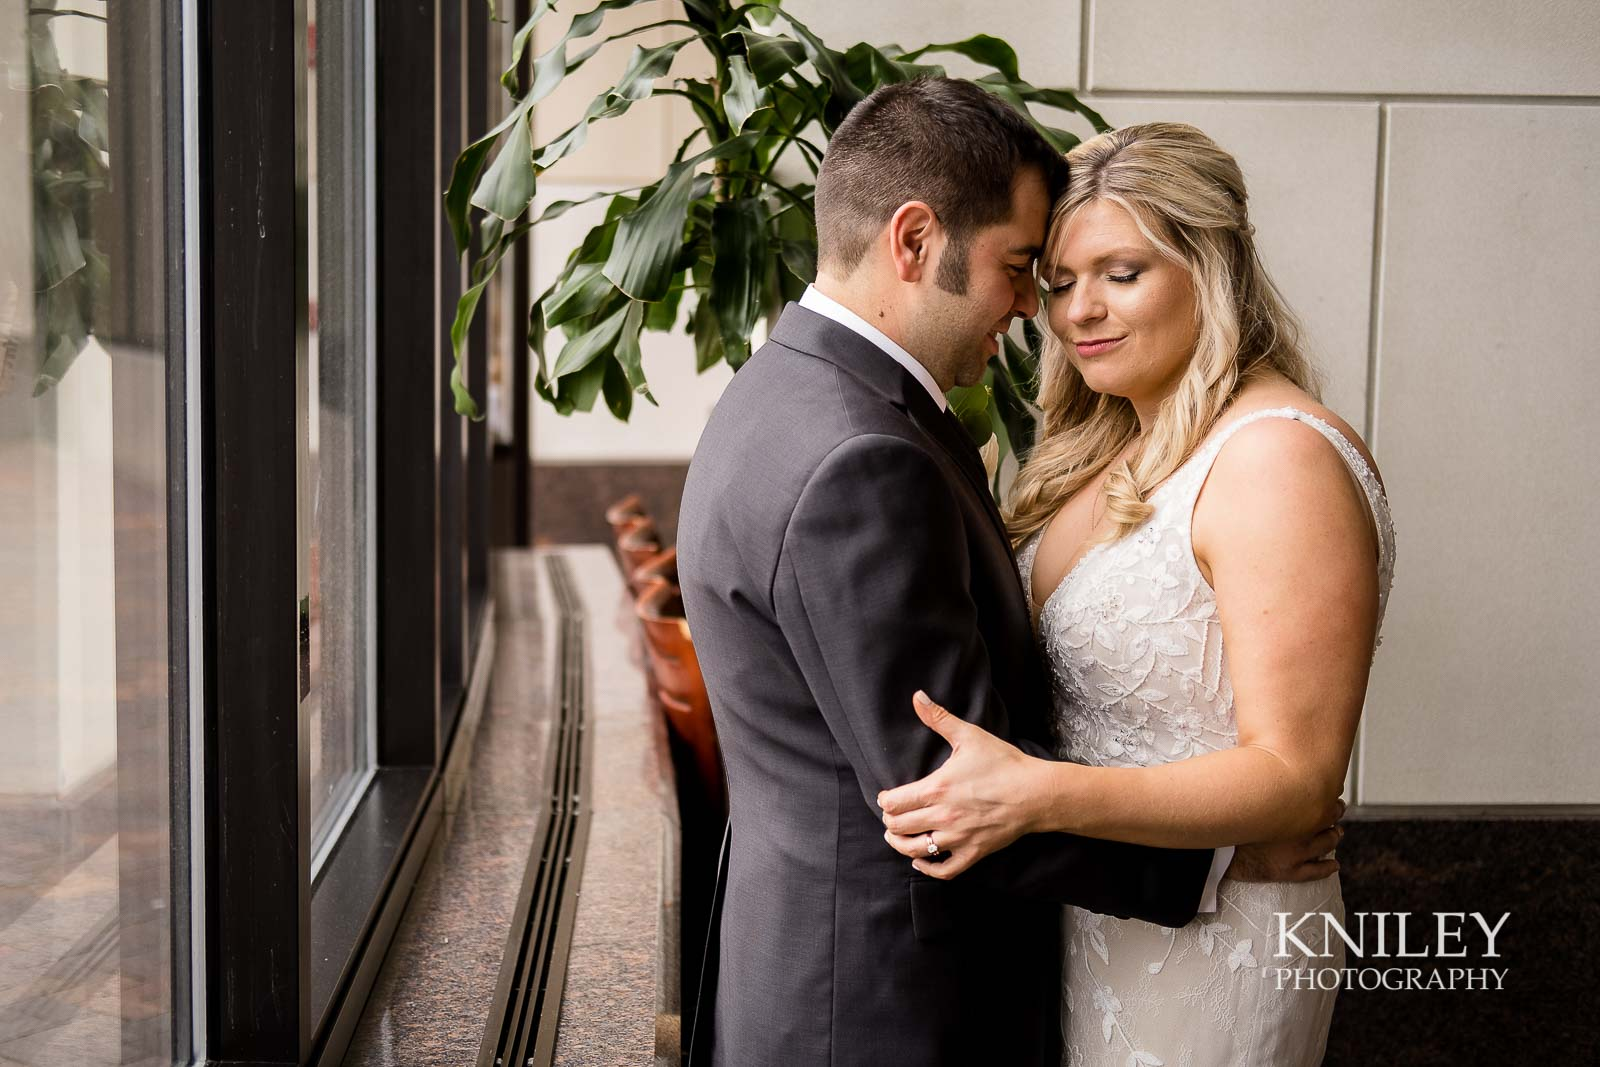 38-Max-of-Eastman-Wedding-and-Reception-Rochester-NY-Kniley-Photography.jpg